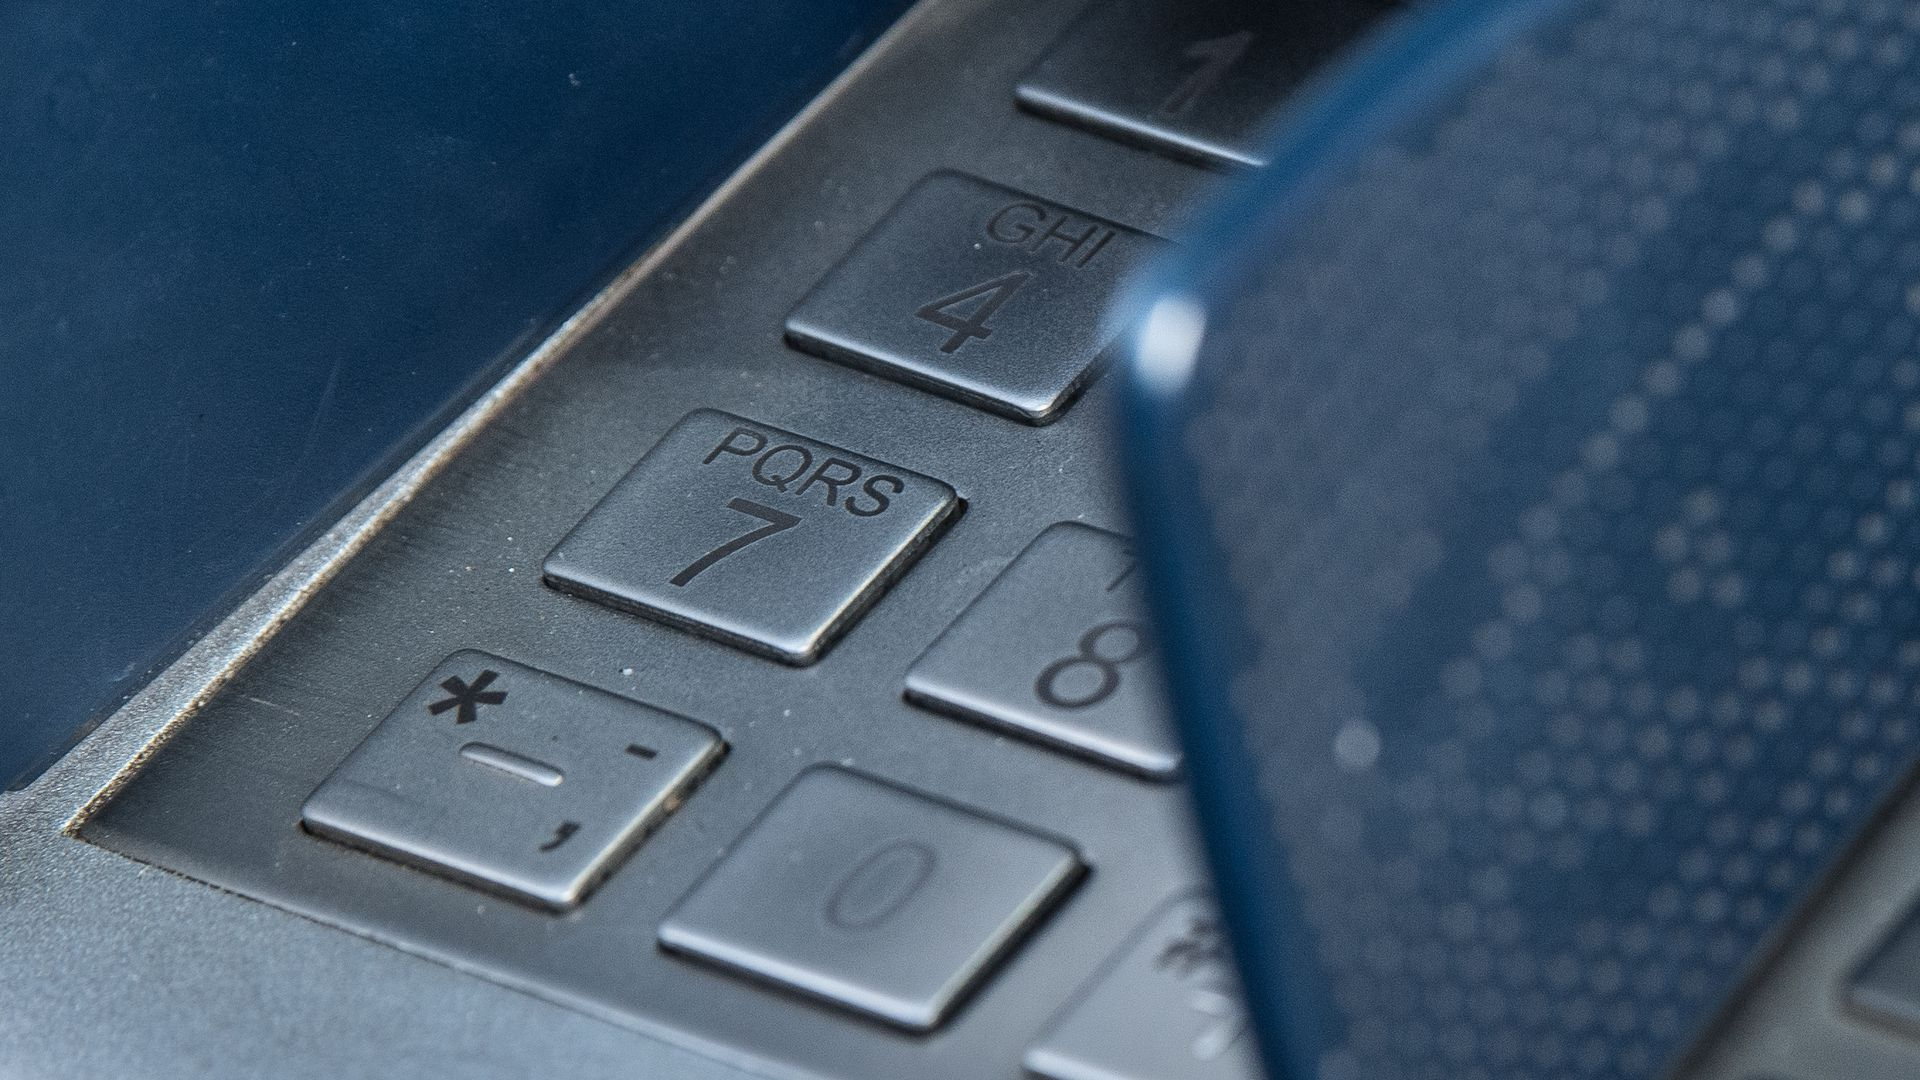 Pin pad numbers for ATM displayed.